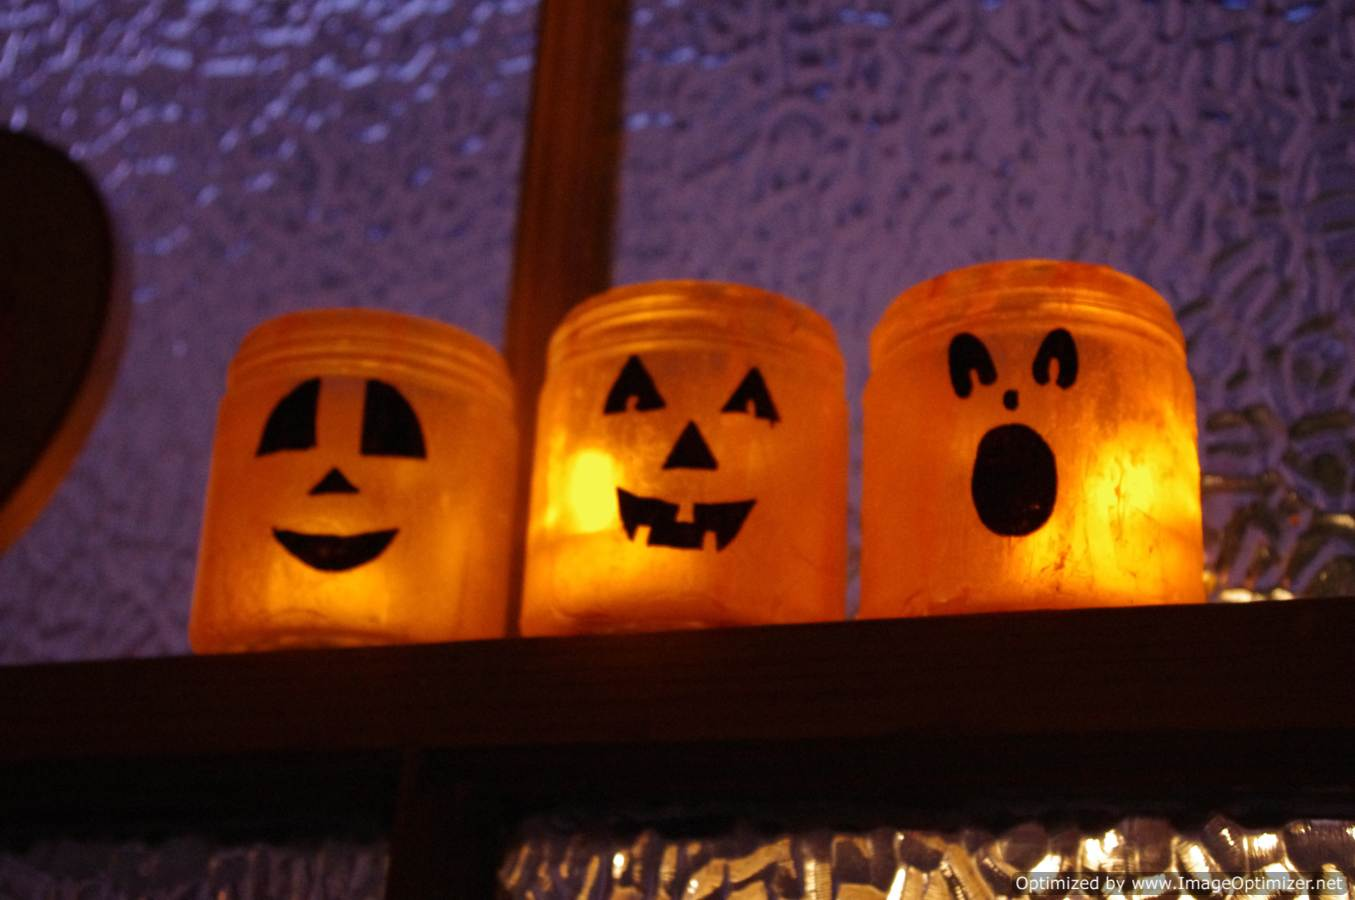 How to make a child-friendly Pumpkin nightlight